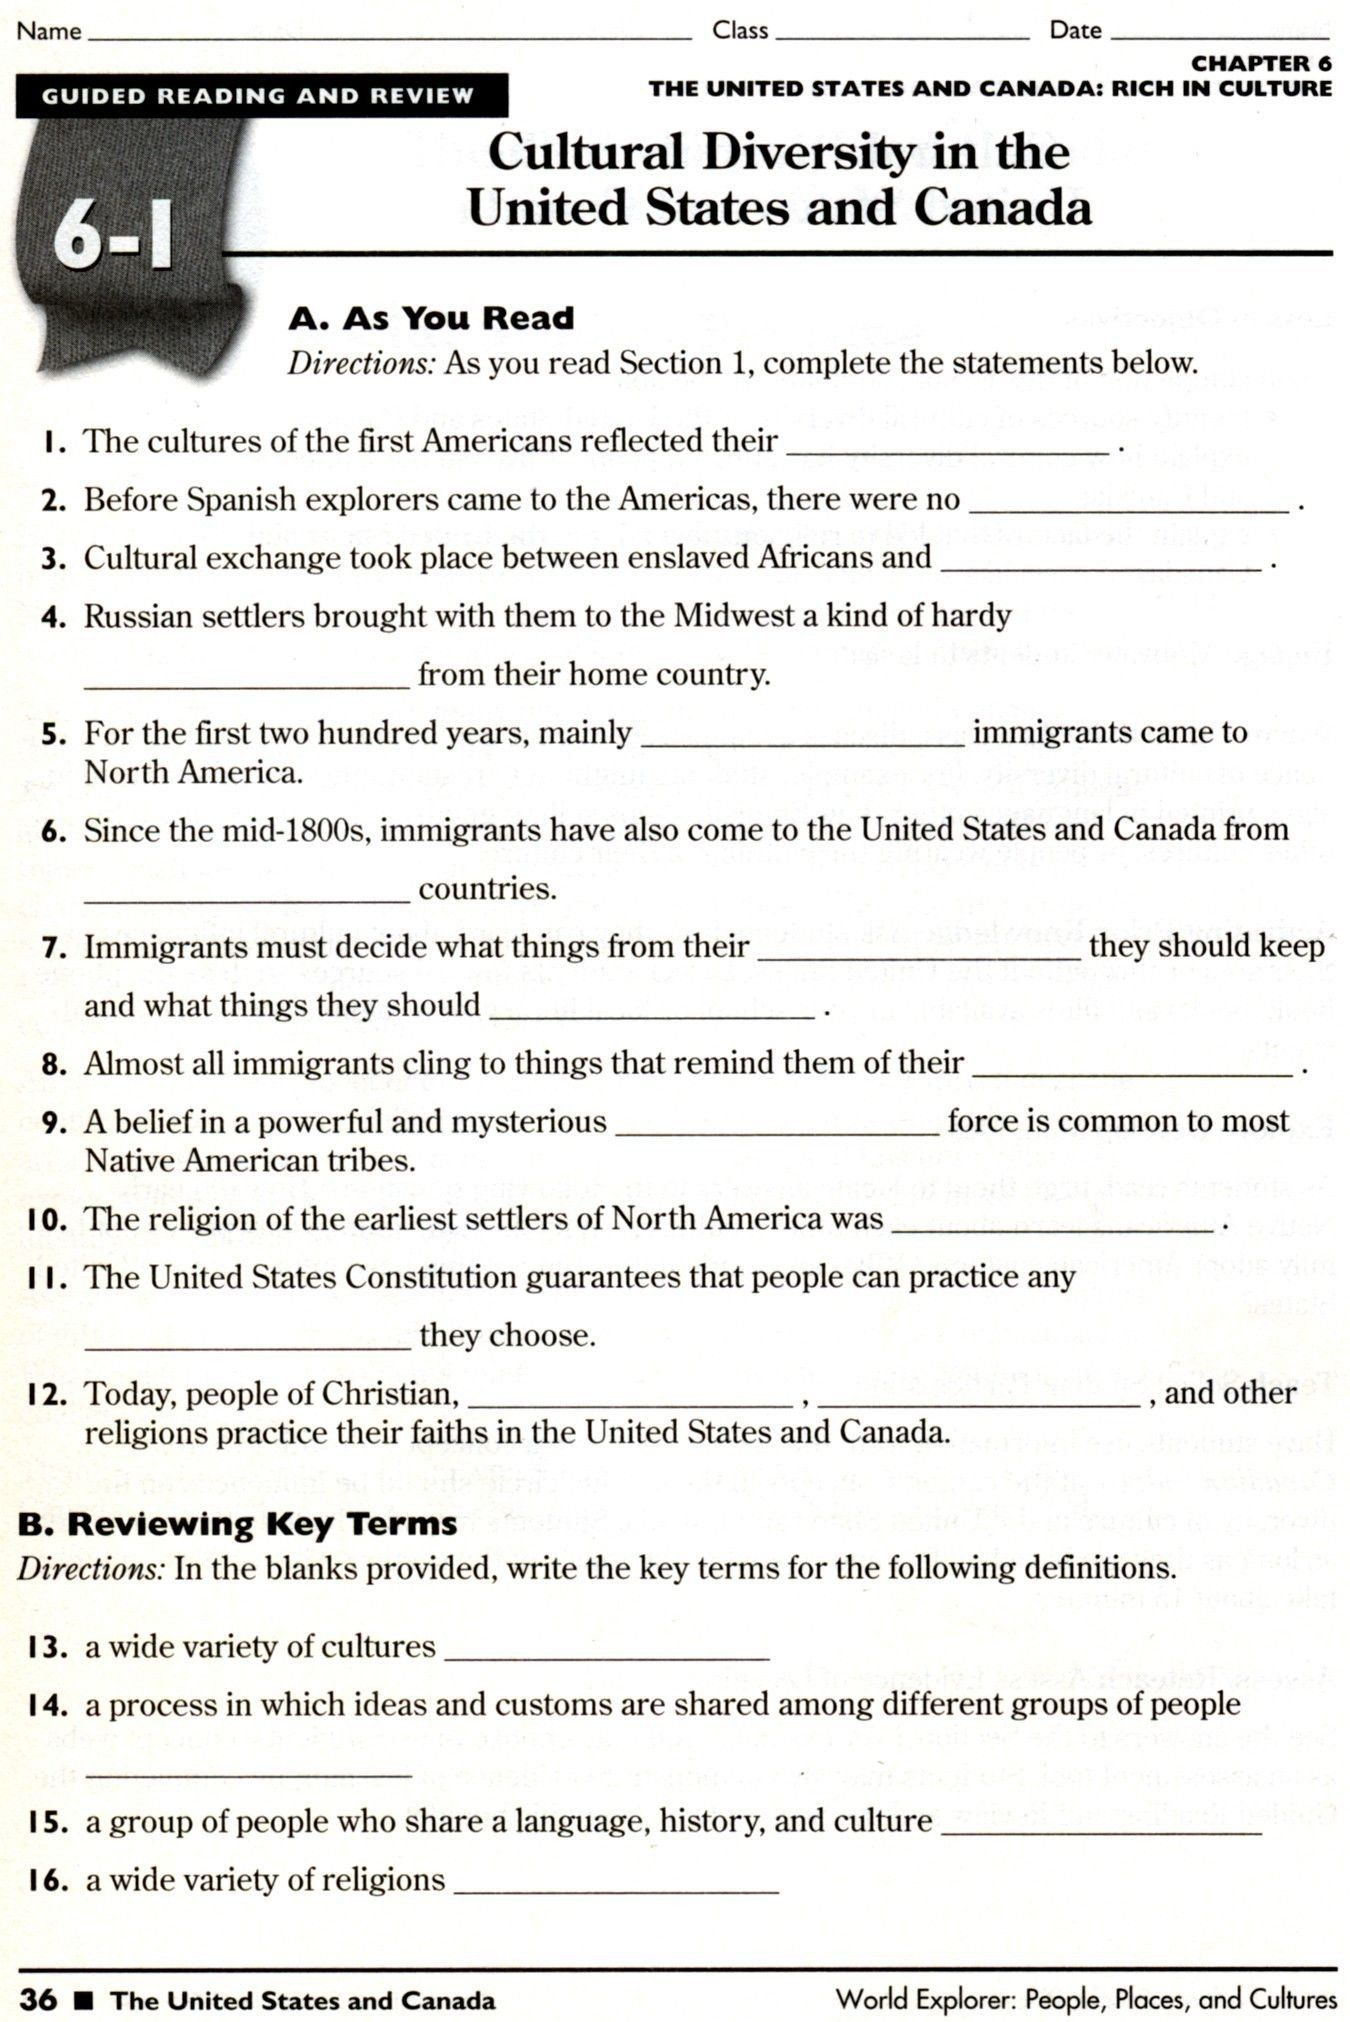 7th Grade History Worksheets Grade 7 Social Stu S